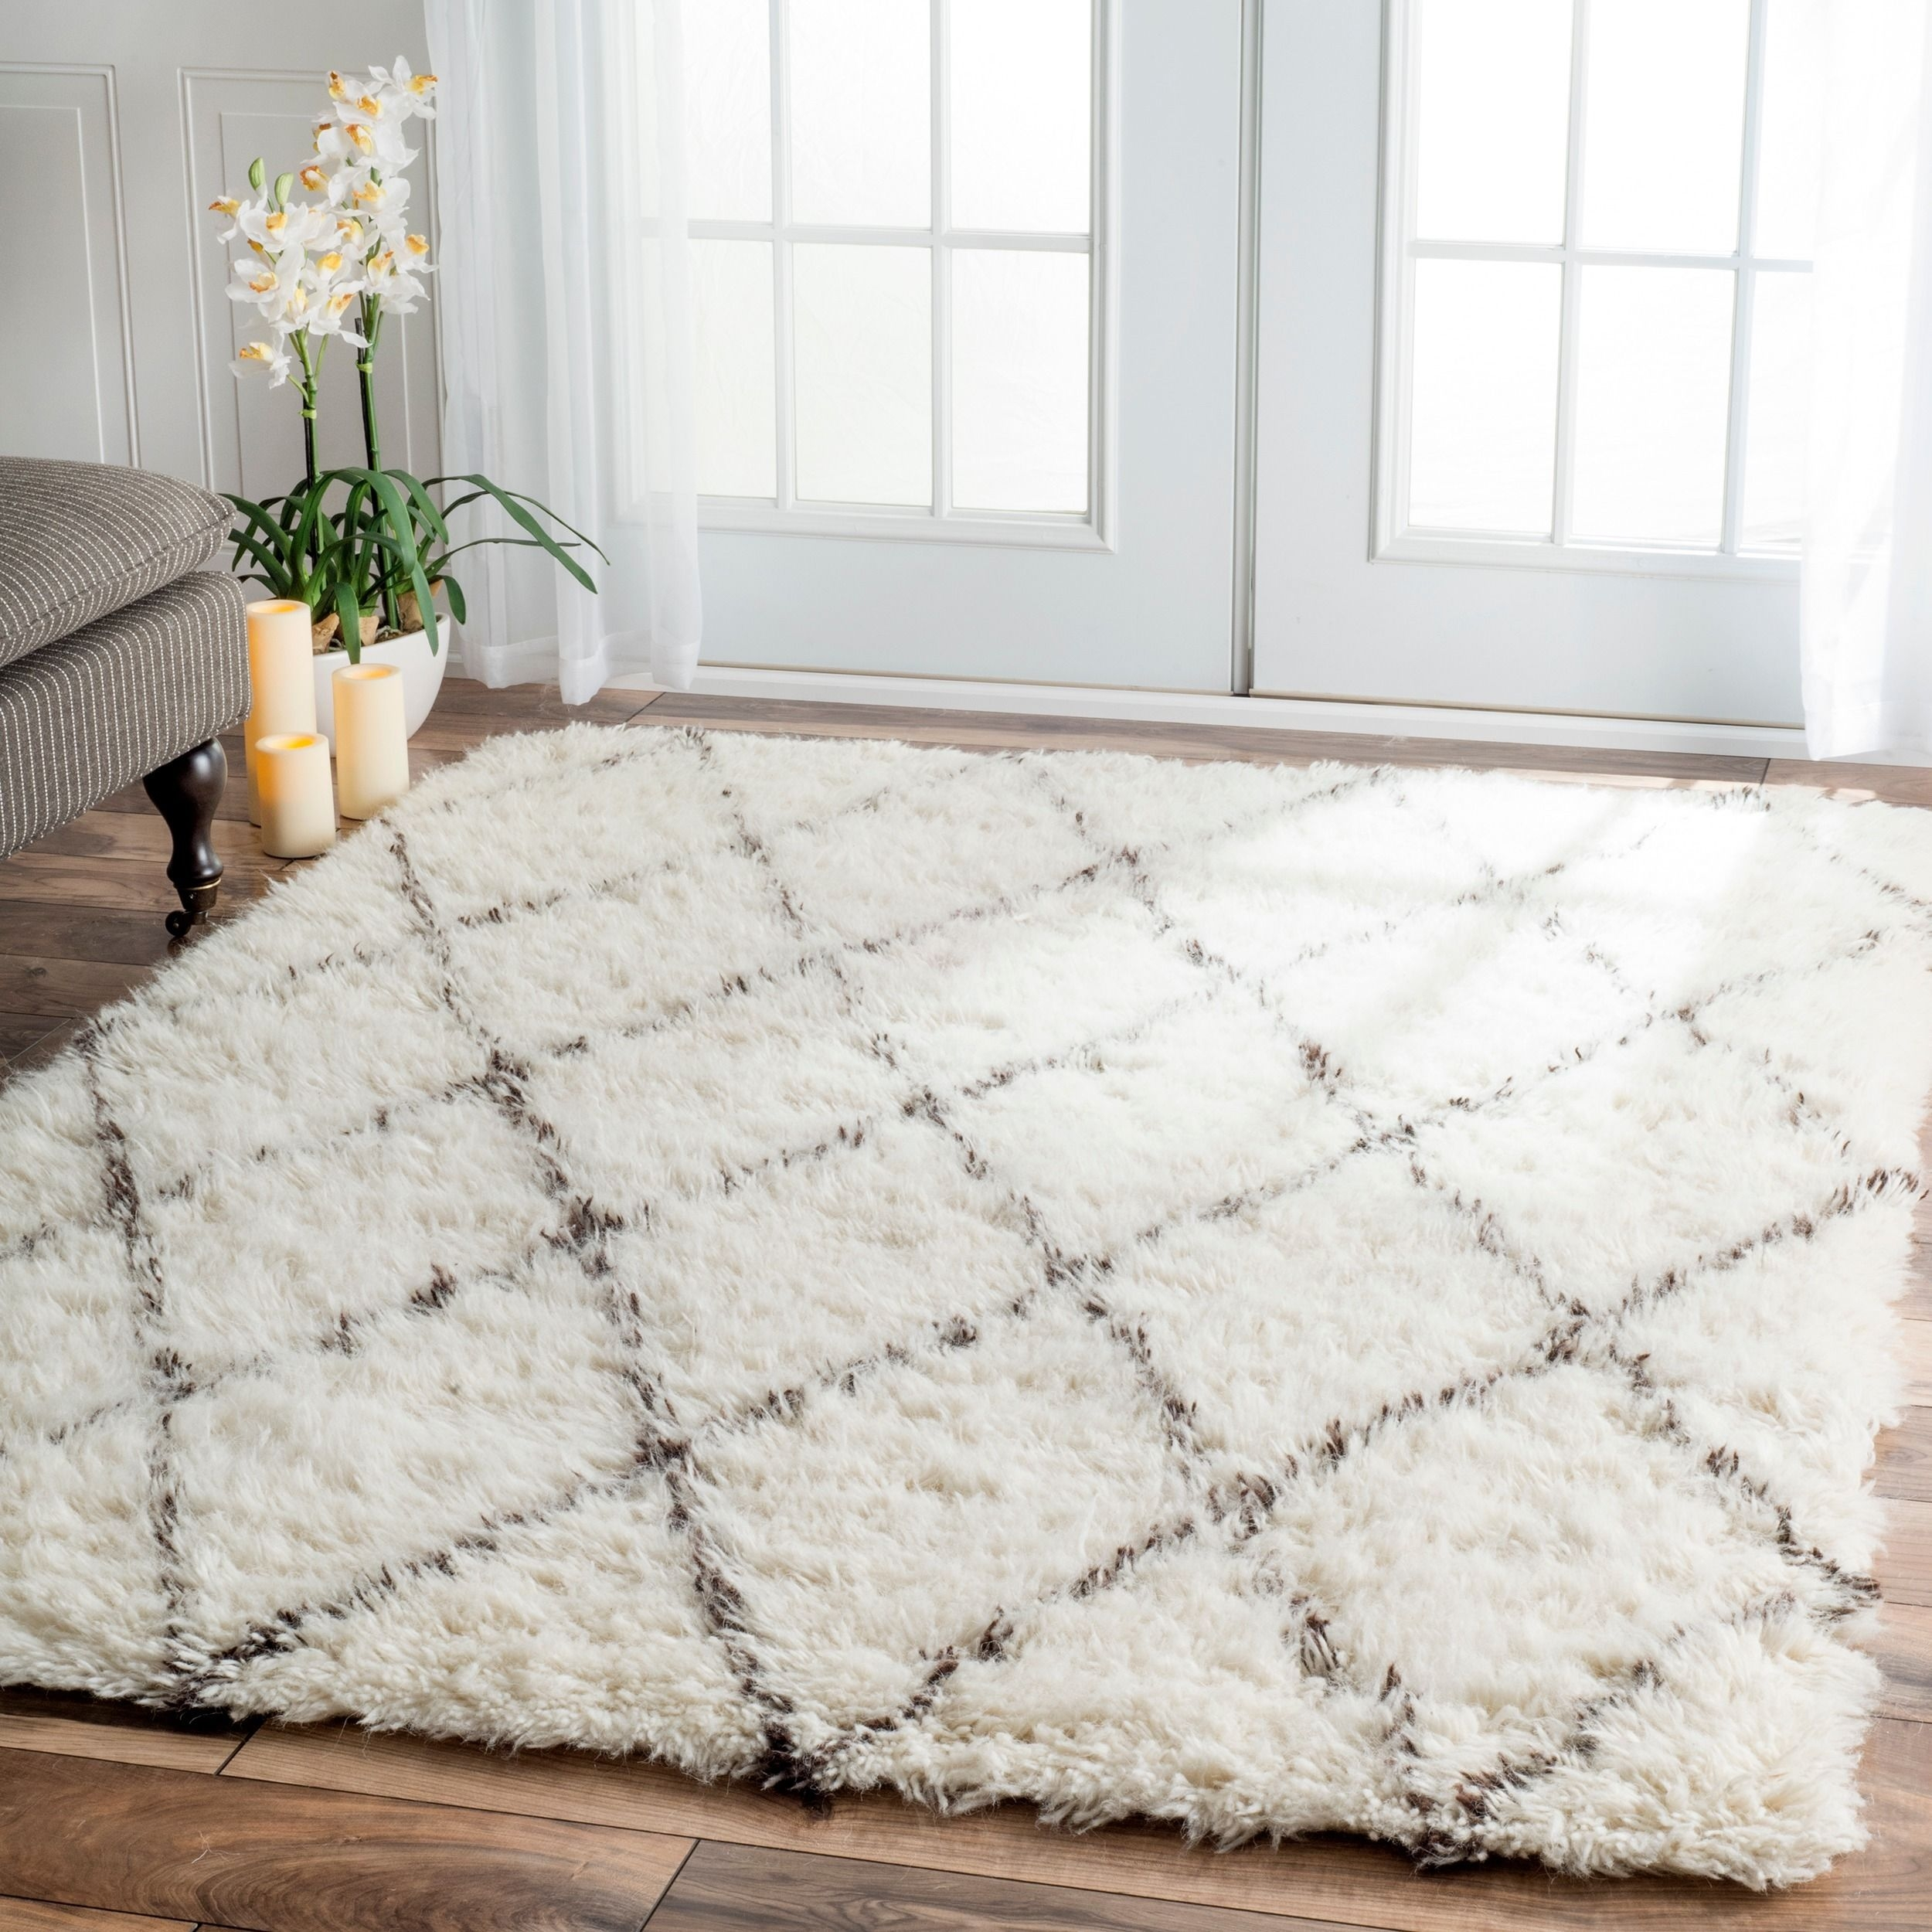 Wool Area Rugs Dunes Collection Candler Wool Area Rug Kinder Pertaining To Hand Tufted Wool Area Rugs (#13 of 15)